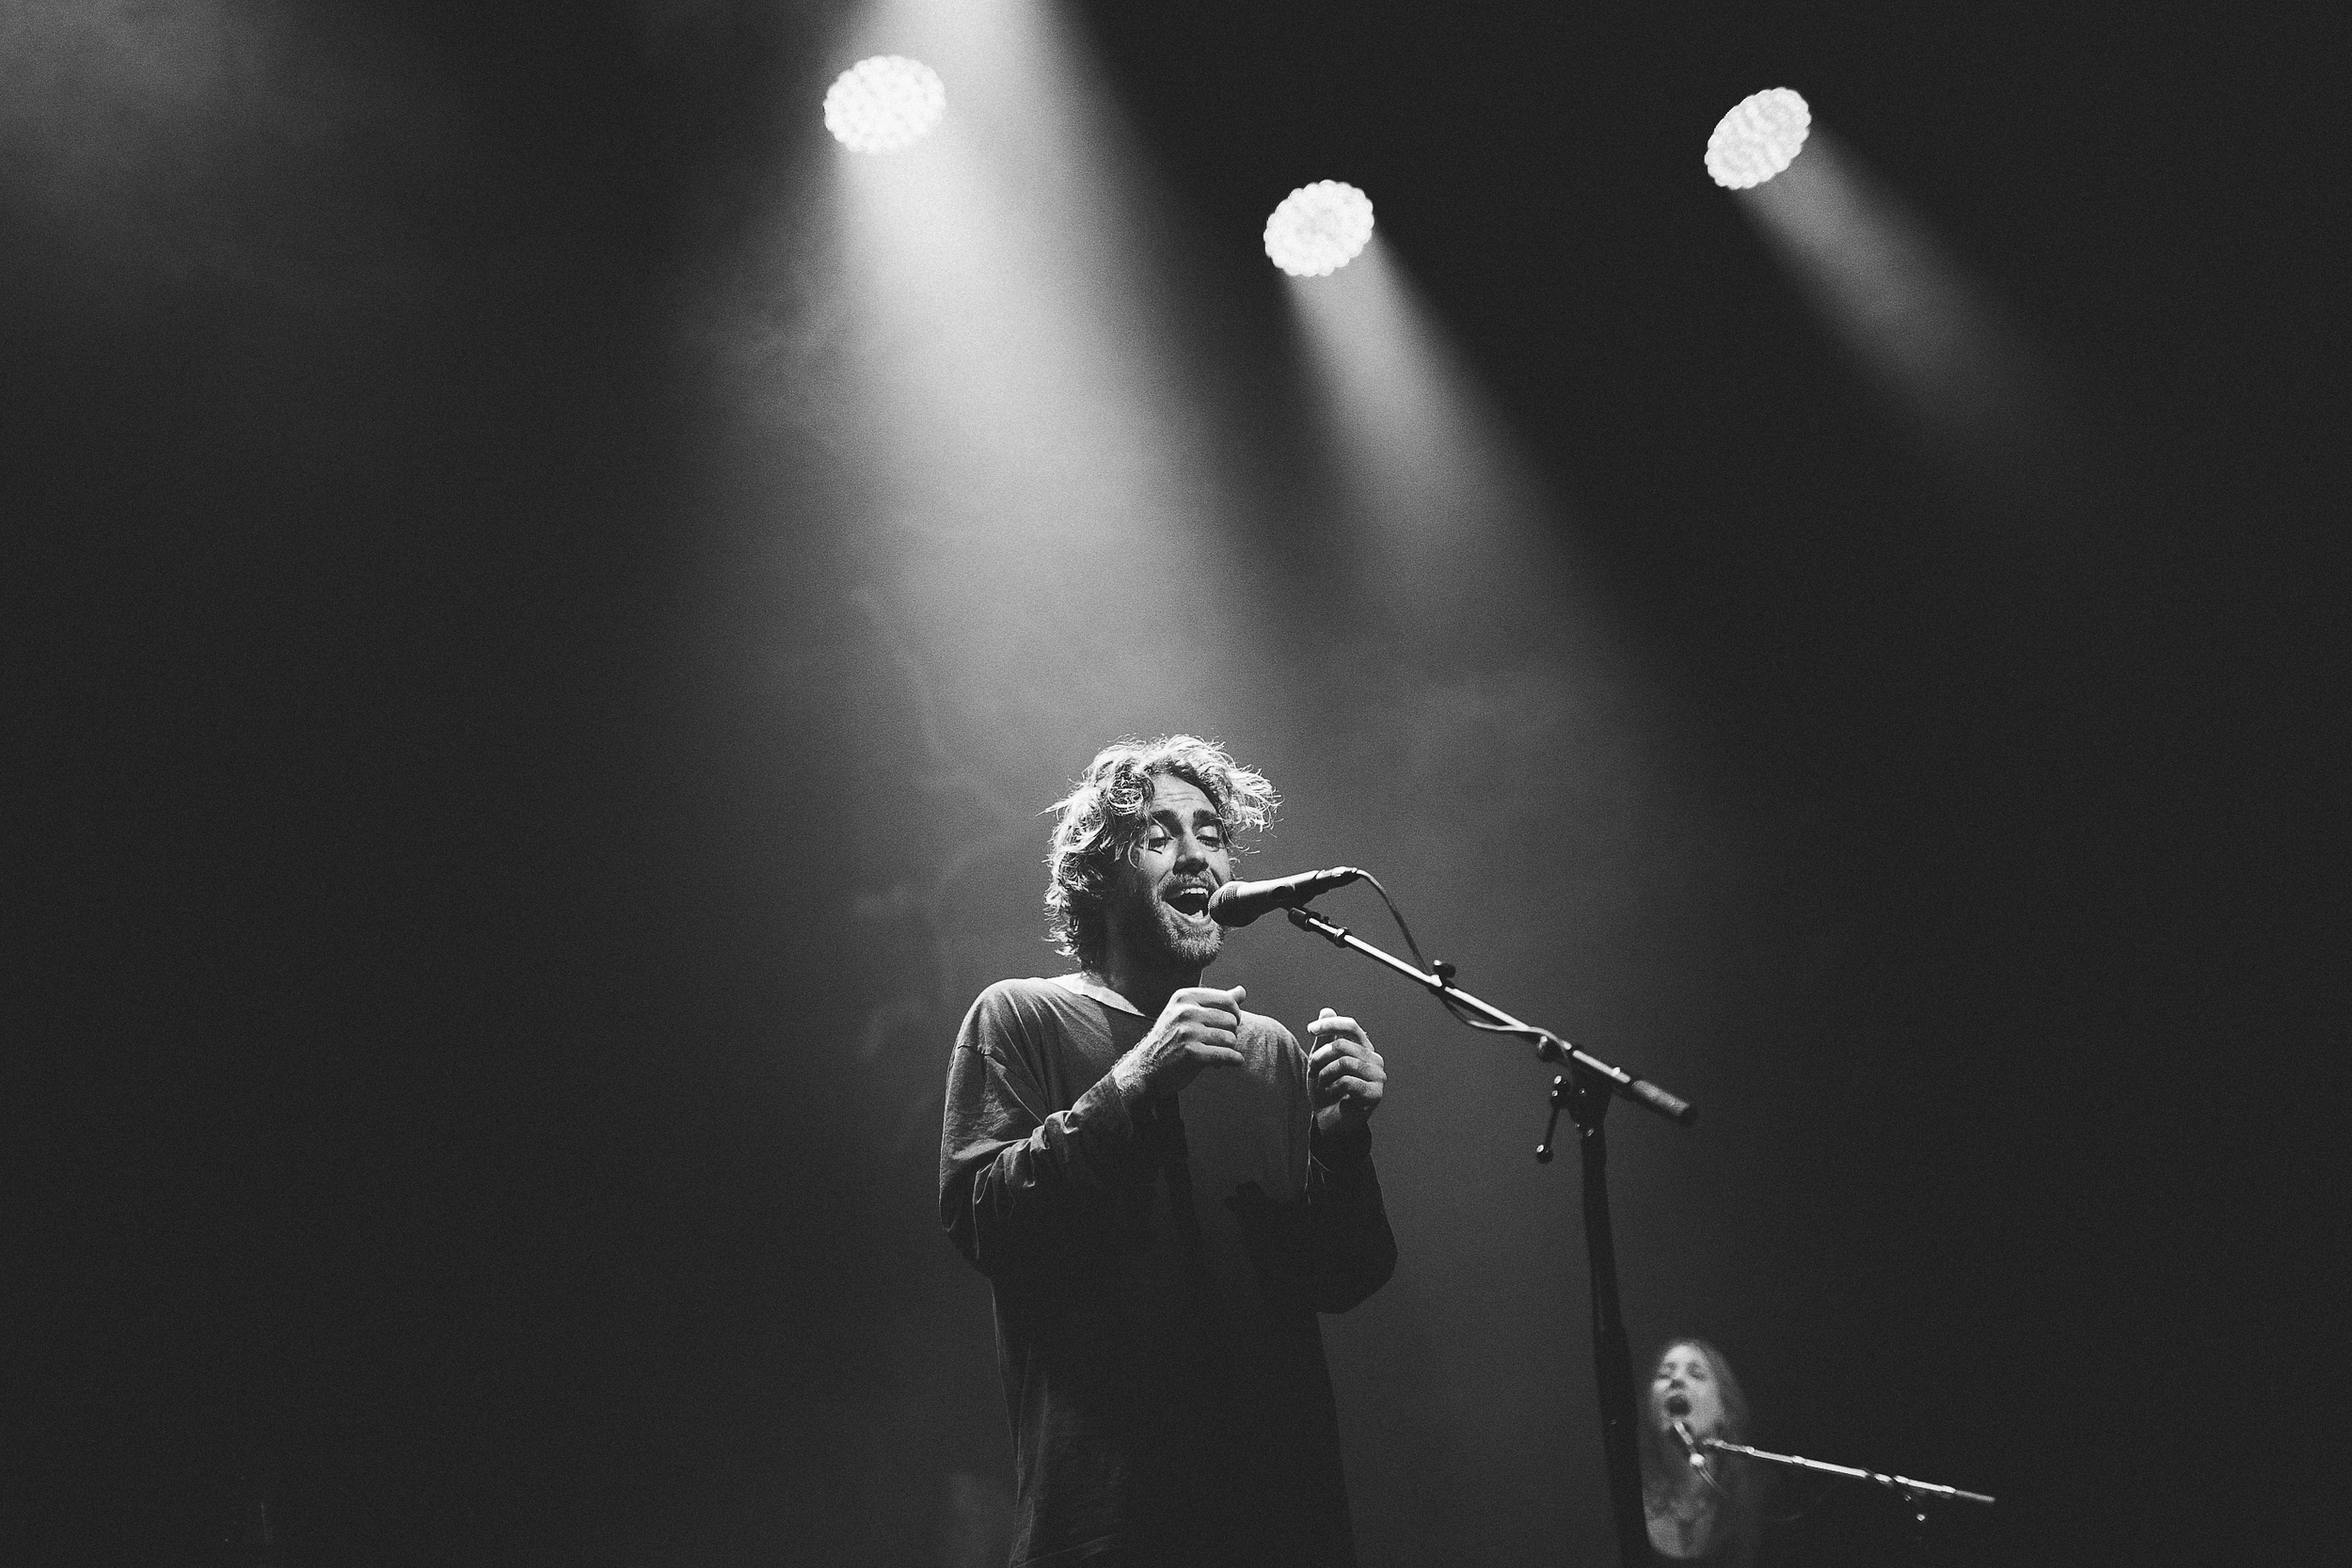 Matt Corby - Live at Thebarton Theatre, Adelaide - Tulleric Tour - Live Photographer - www.katherineschultzphotography.com 7